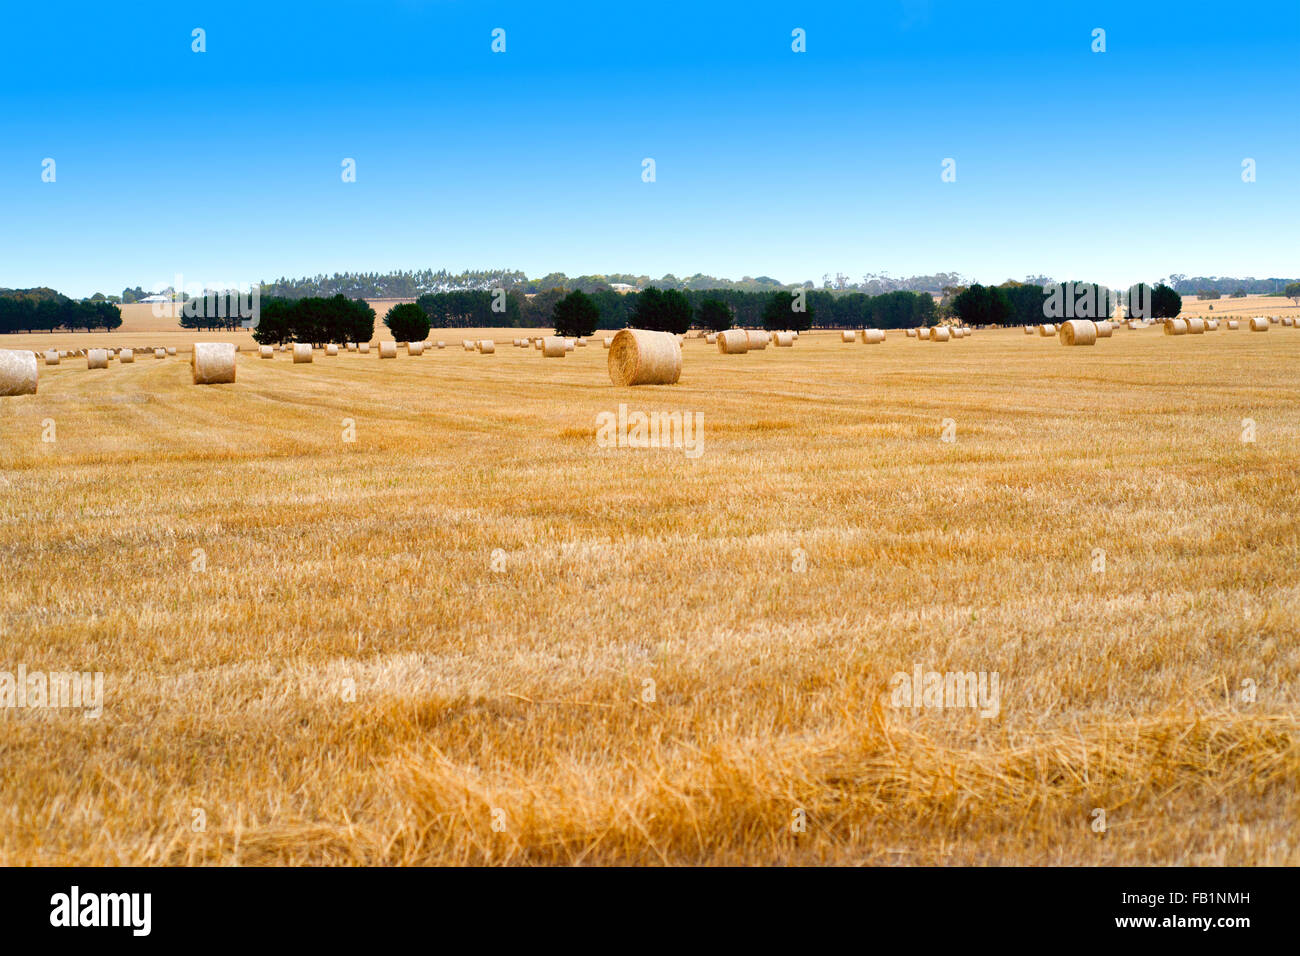 Countryside landscape with golden bales of hay, Australia. - Stock Image